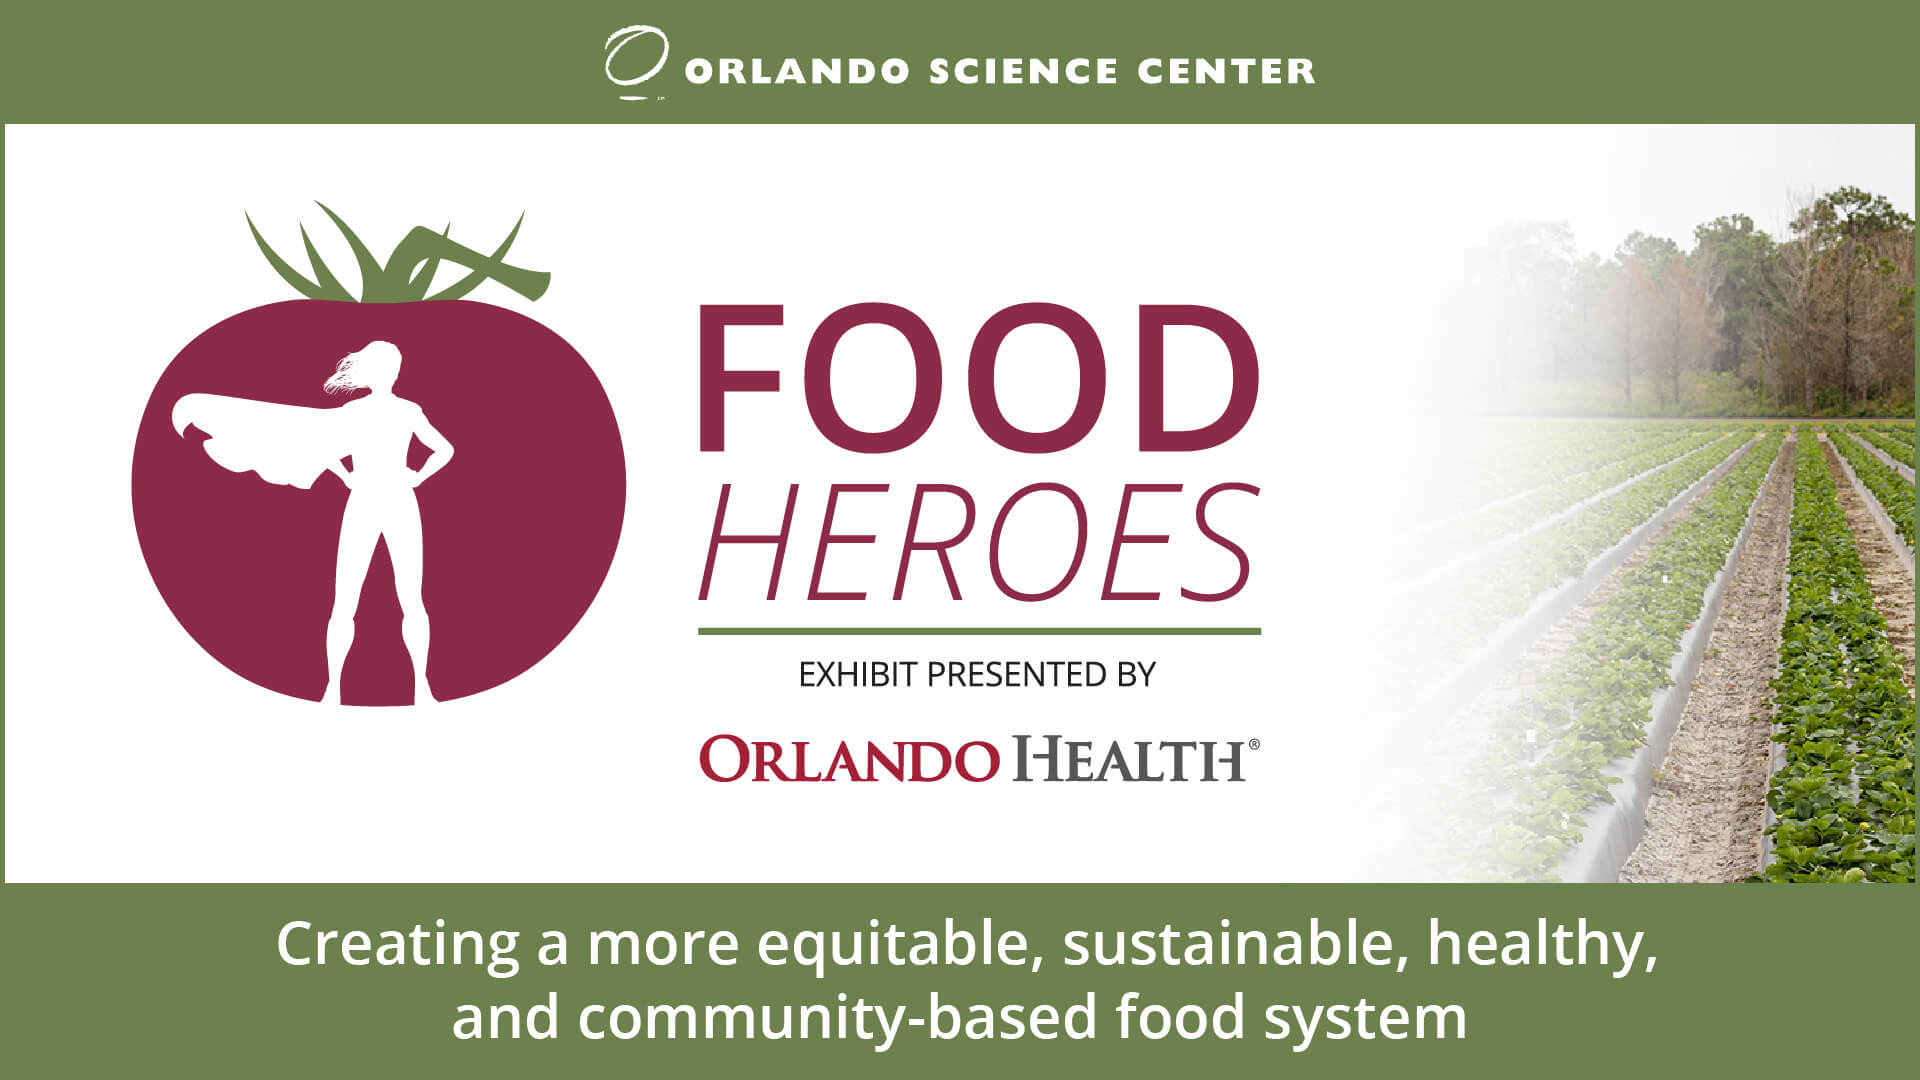 Food Heroes Exhibit Presented by Orlando Health - logo of superhero outline within tomato silhouette and photo background of strawberry field.